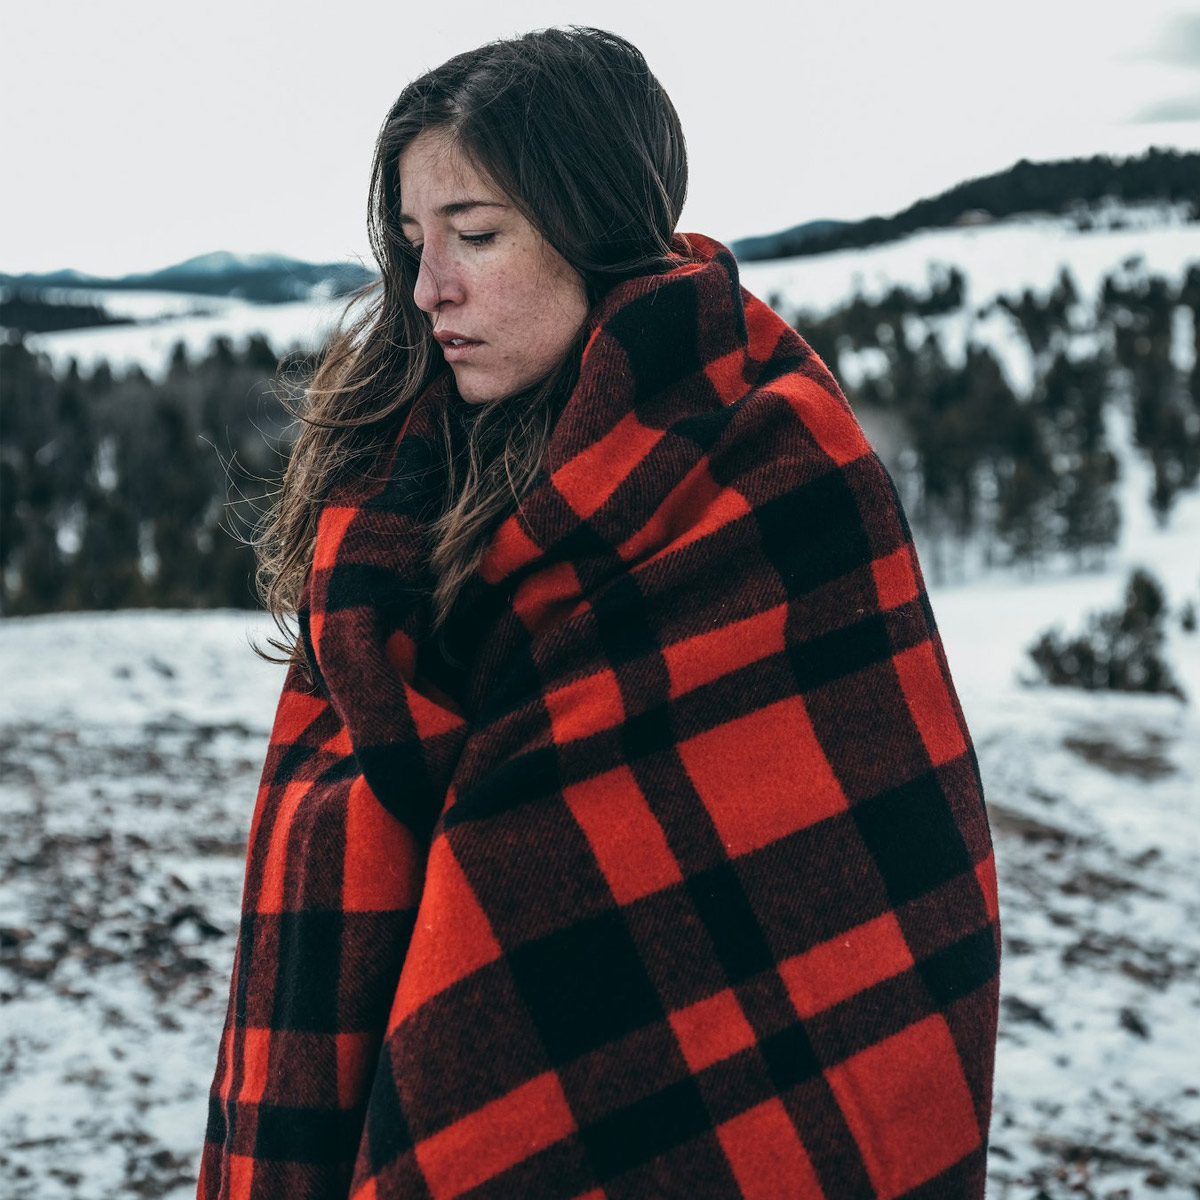 Filson Mackinaw Wool Blanket 11080110-Red Black, keeps you warm in any weather